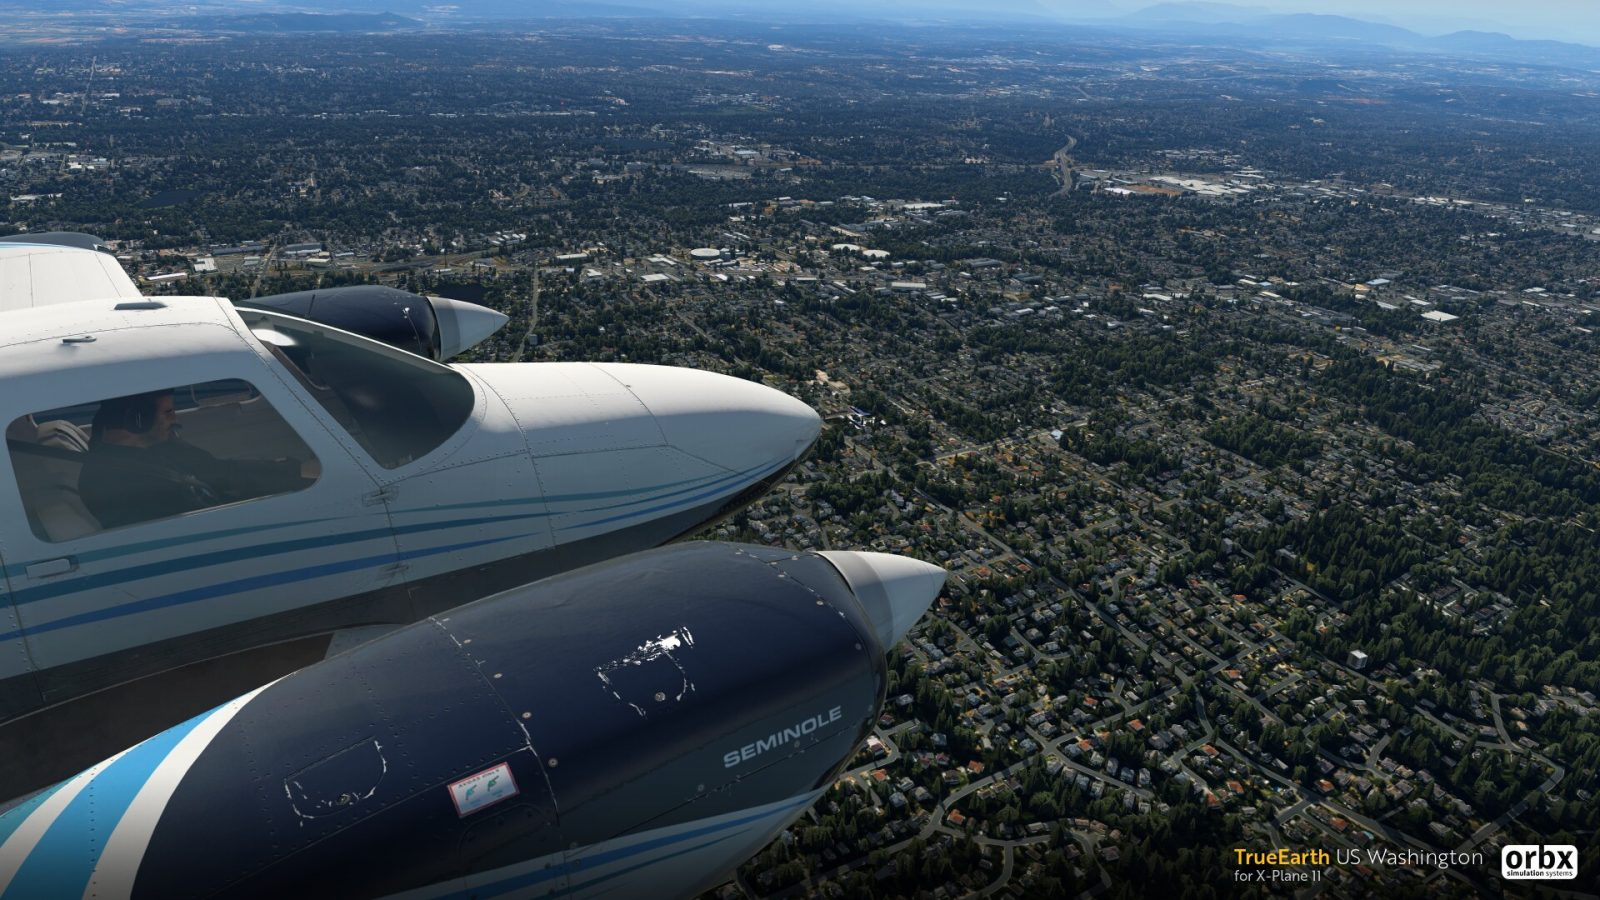 Fselite : Home - Flight Sim News, Reviews and More | FSElite